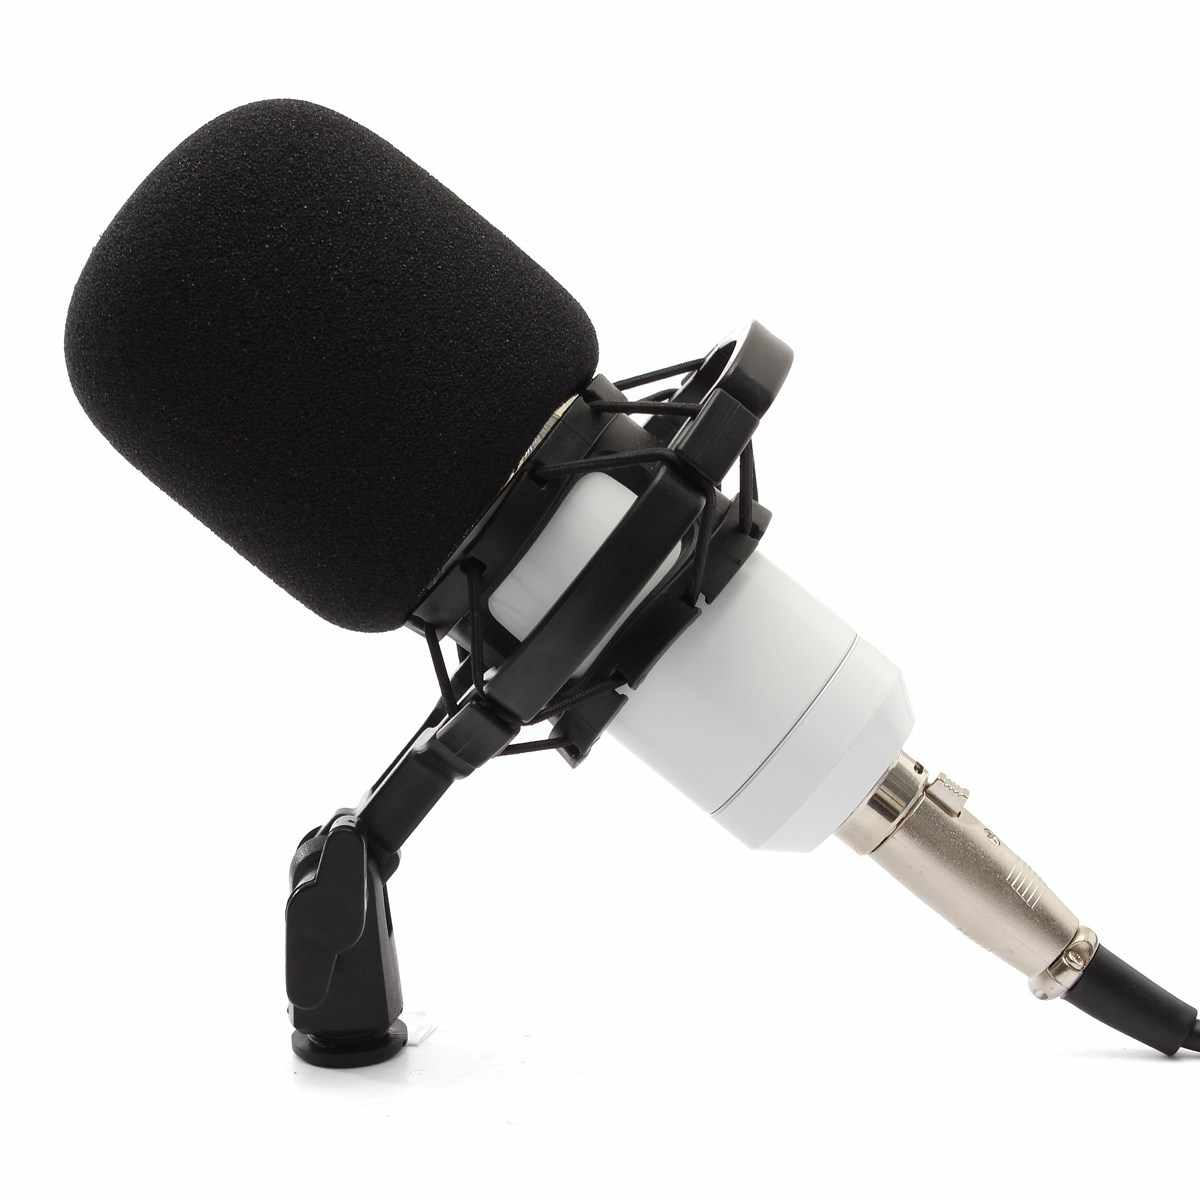 LEORY BM-800 Condenser Microphone Professional 3.5mm With Shock Mount Microphone For Video Recording Studio Computer KTV Karaoke